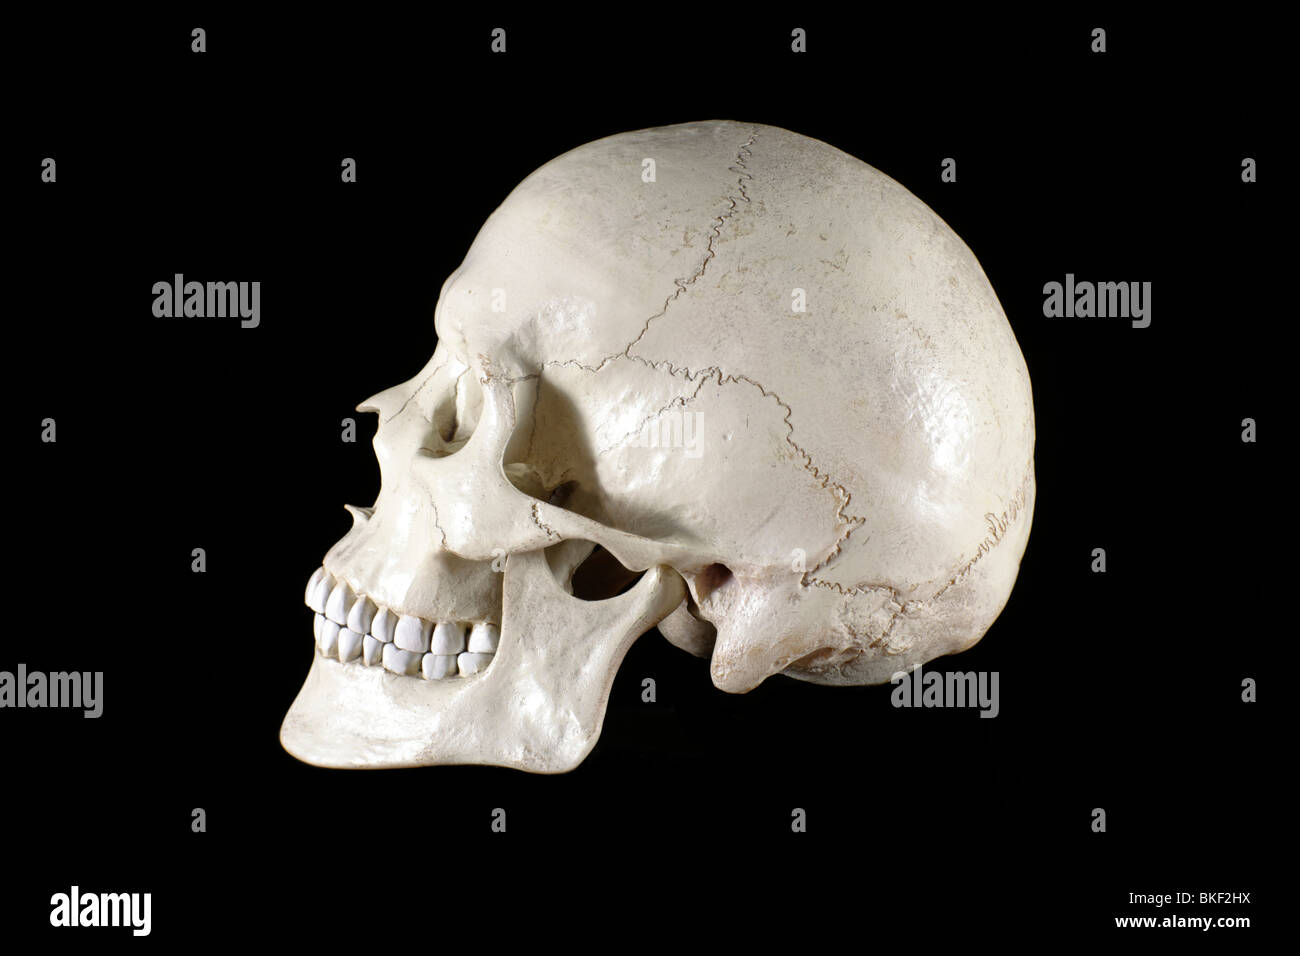 anatomical models of the skull - Stock Image